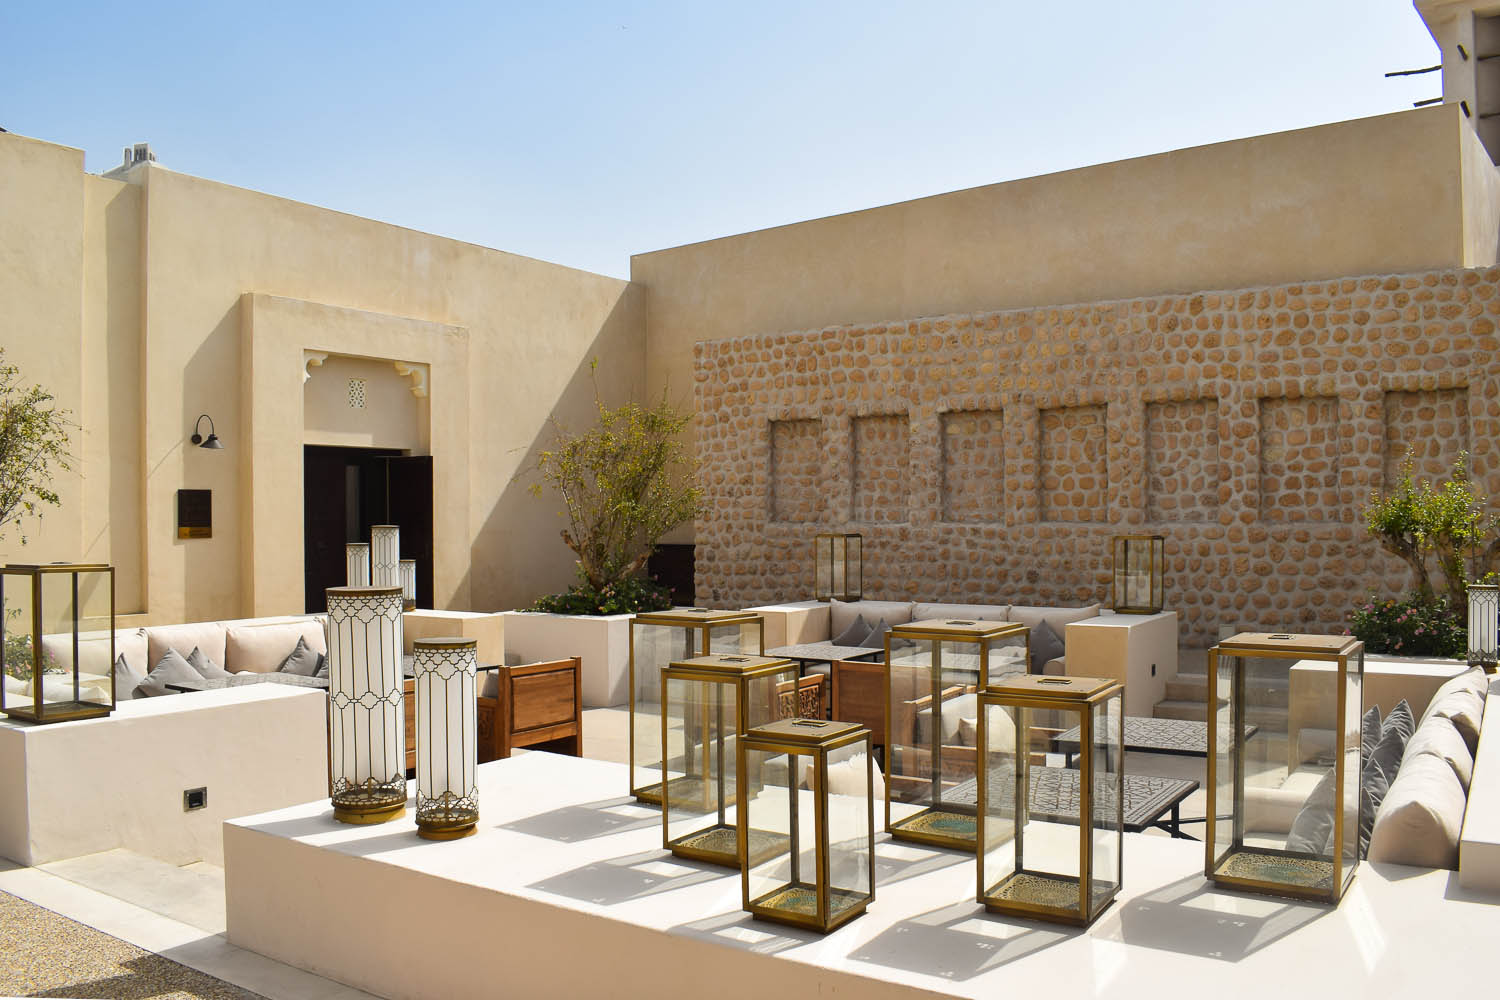 The open-air restaurant at Al Bait. Image:  Ambica Gulati